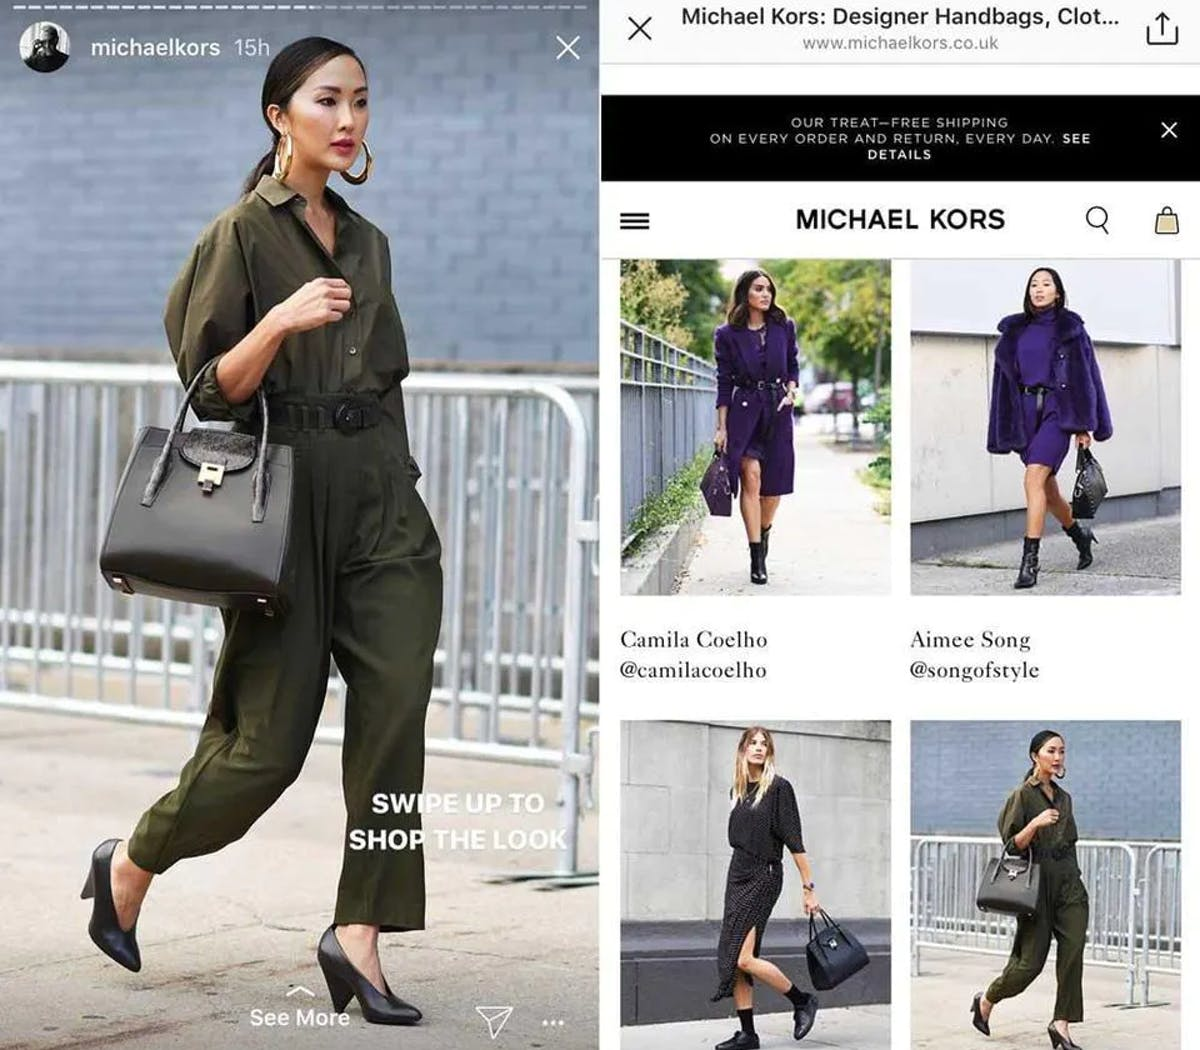 Michael Kors features famous influencers in their brand ad for NYFW